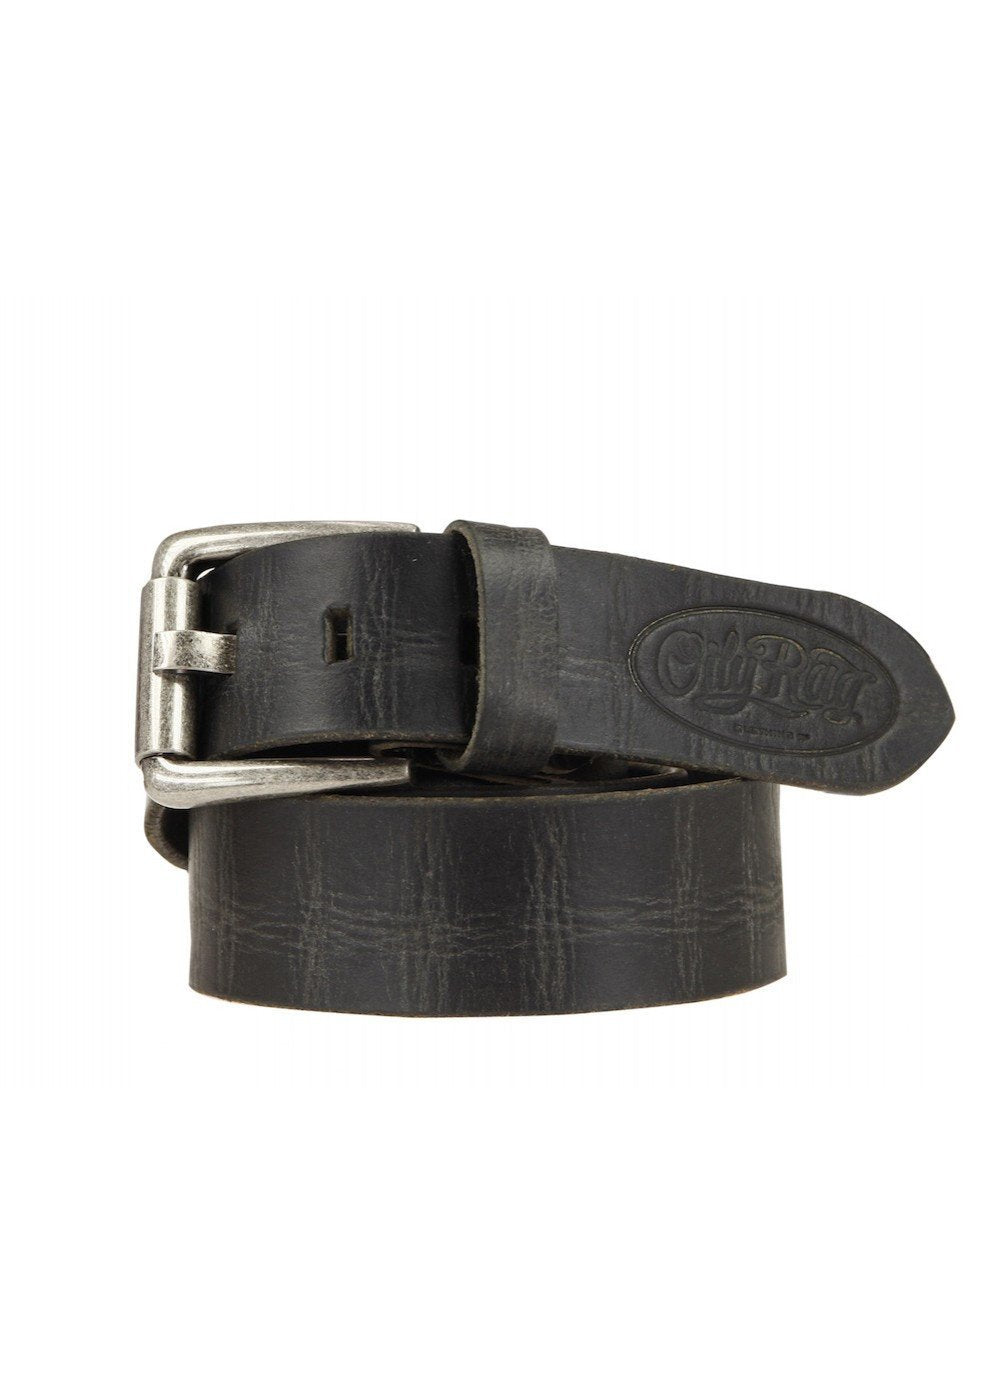 Oily Rag Clothing - Oily Rag Clothing Belt in Oil - Accessories - Salt Flats Clothing